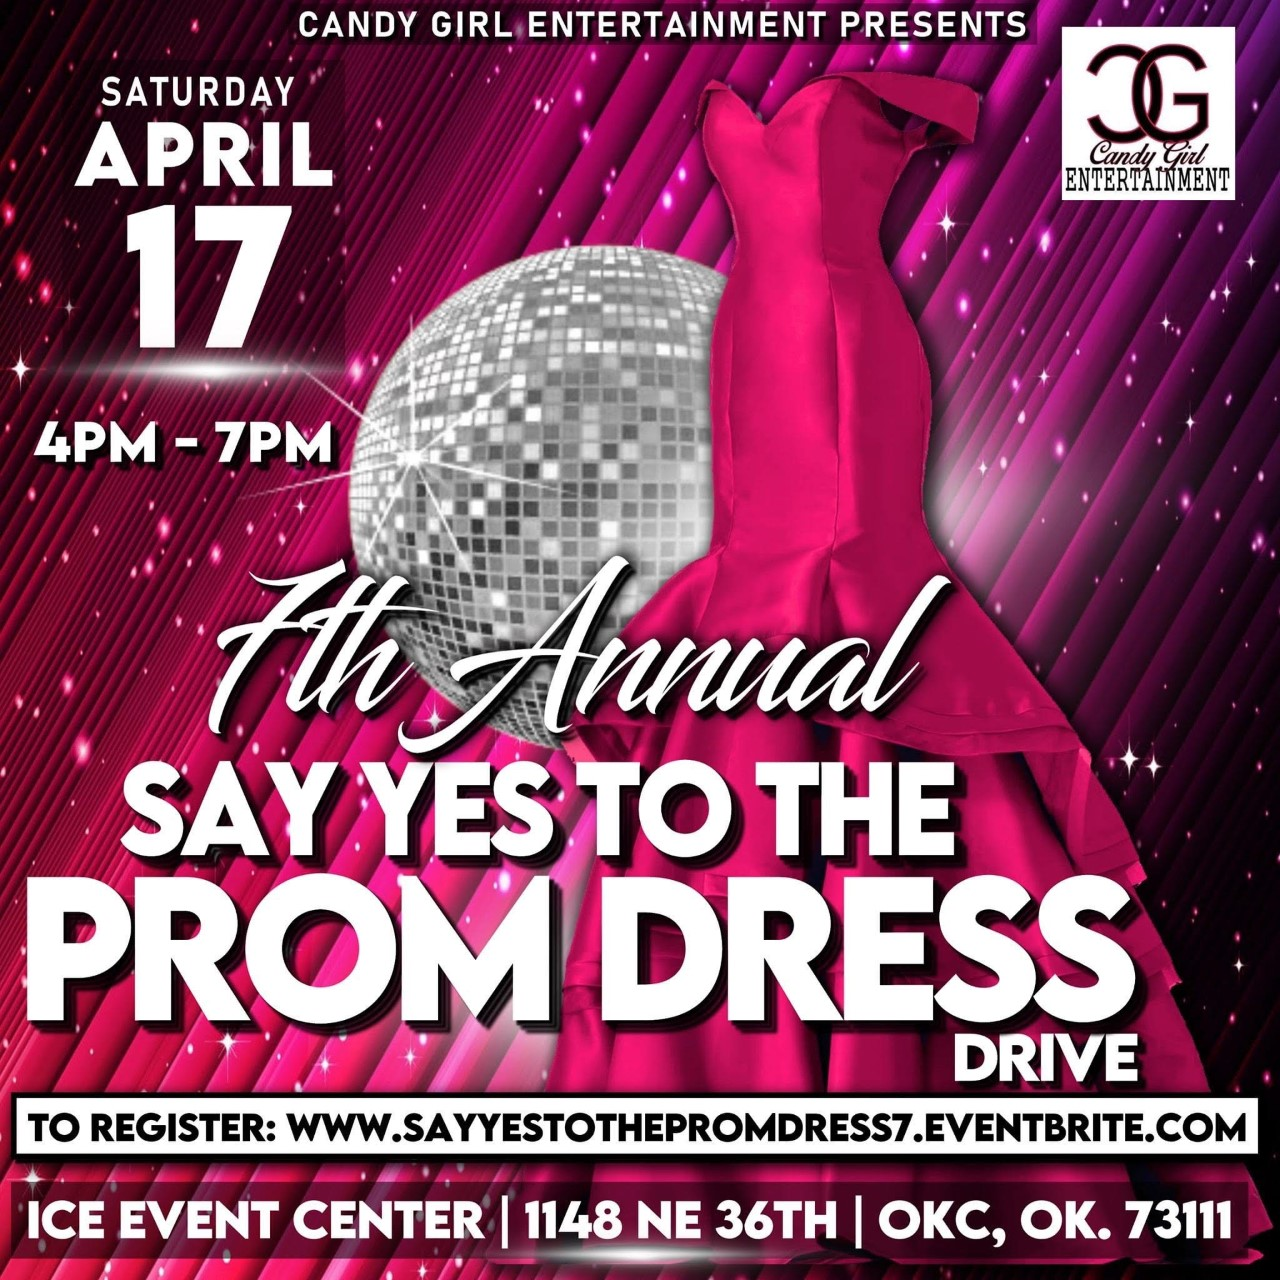 Prom dress giveaway flyer